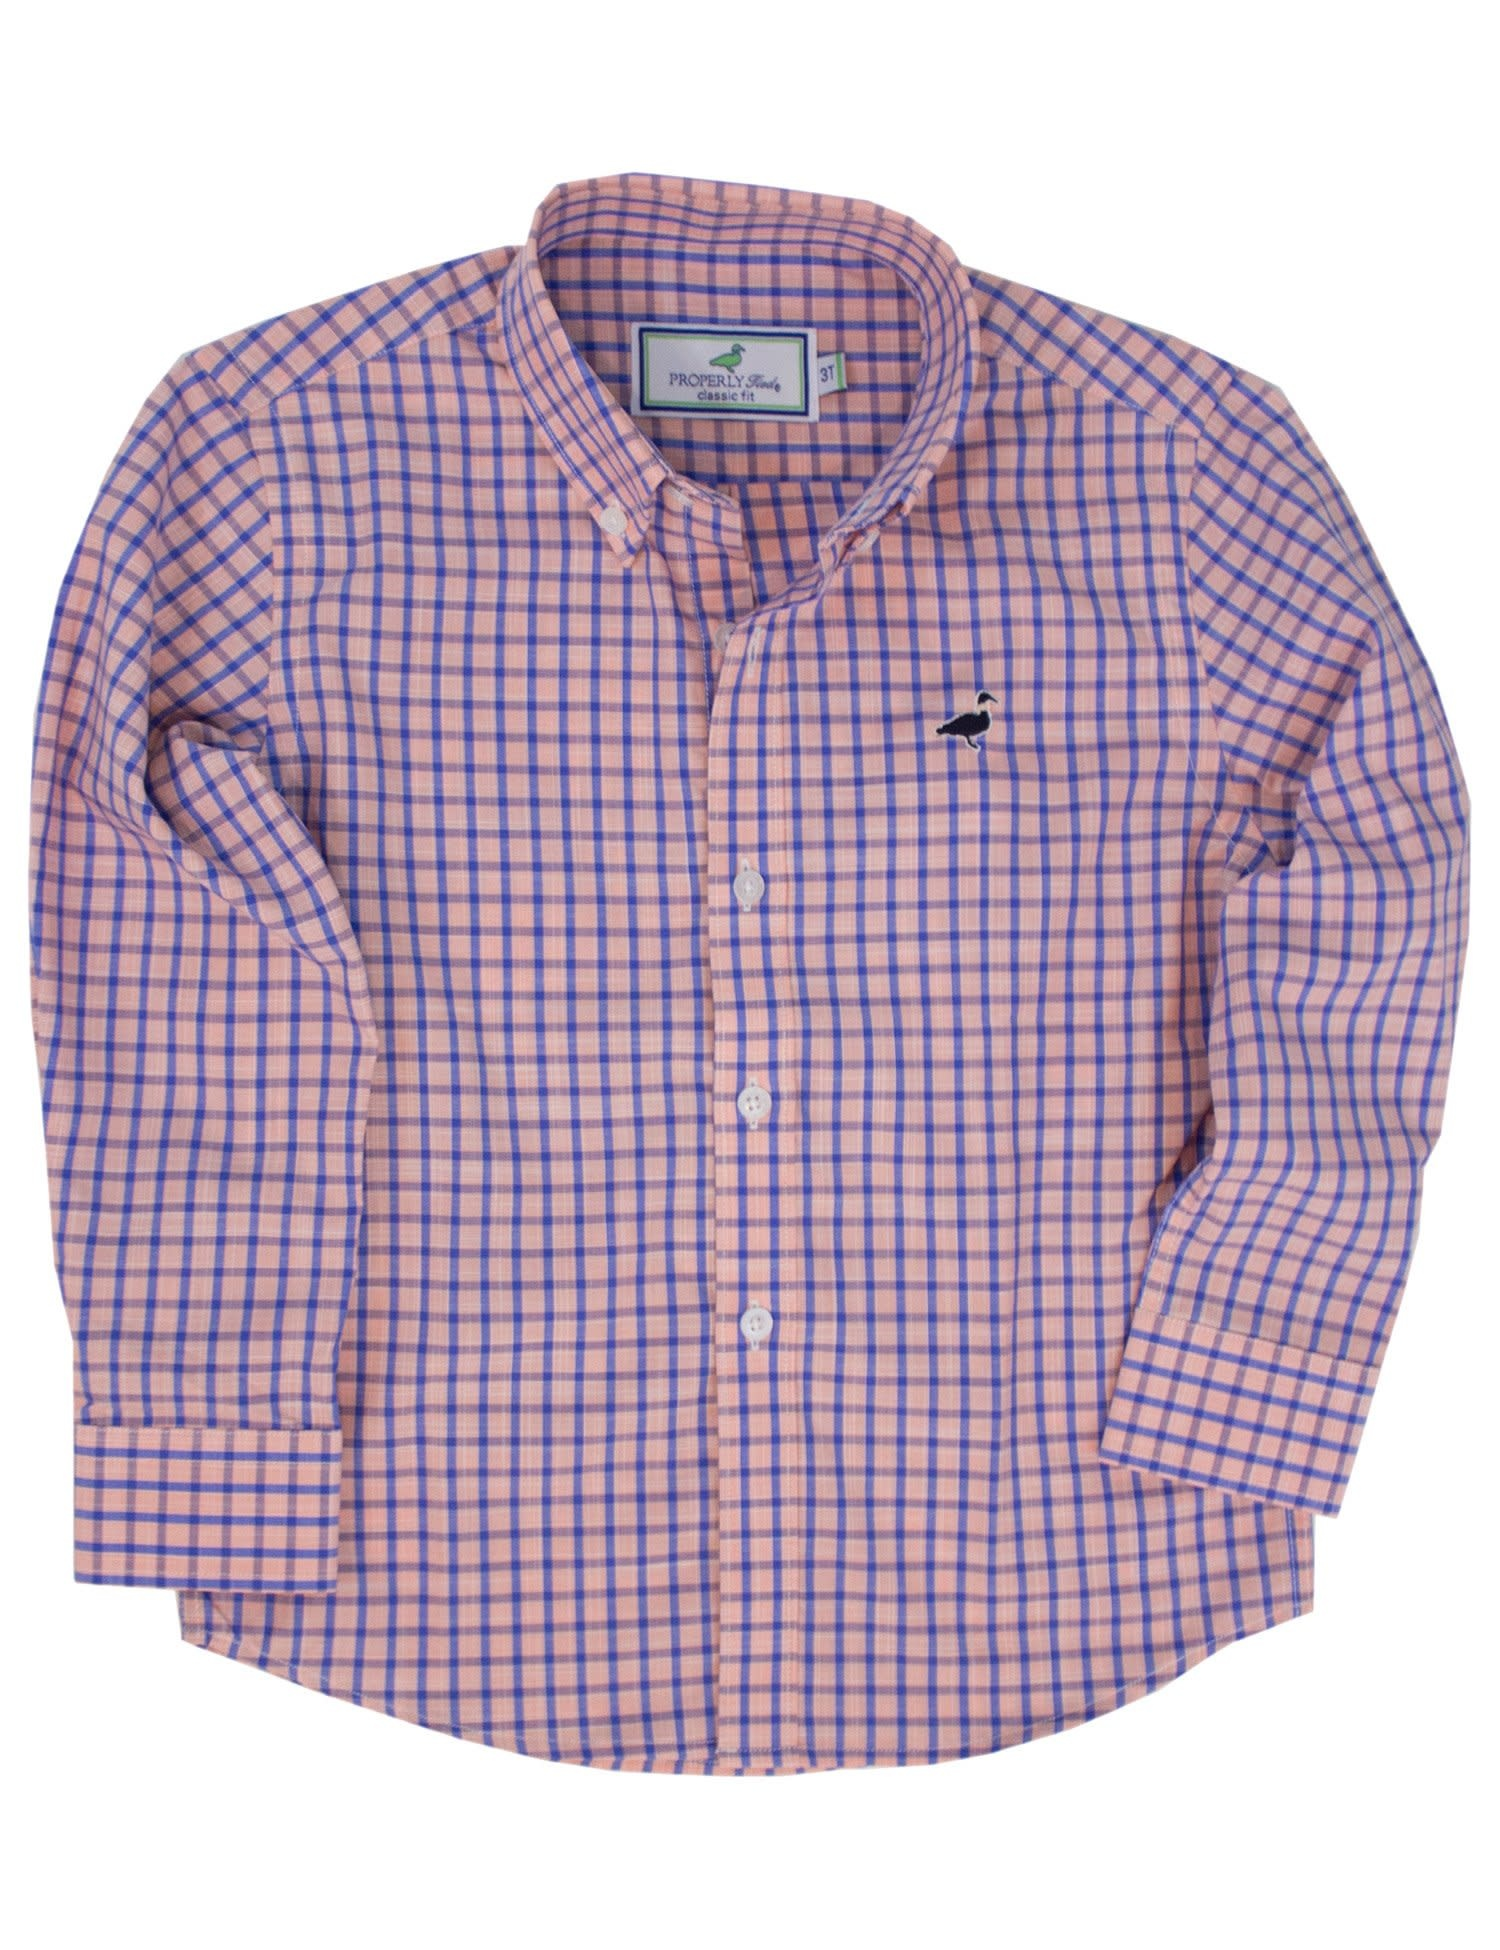 Properly Tied Properly Tied Seasonal Sportshirt